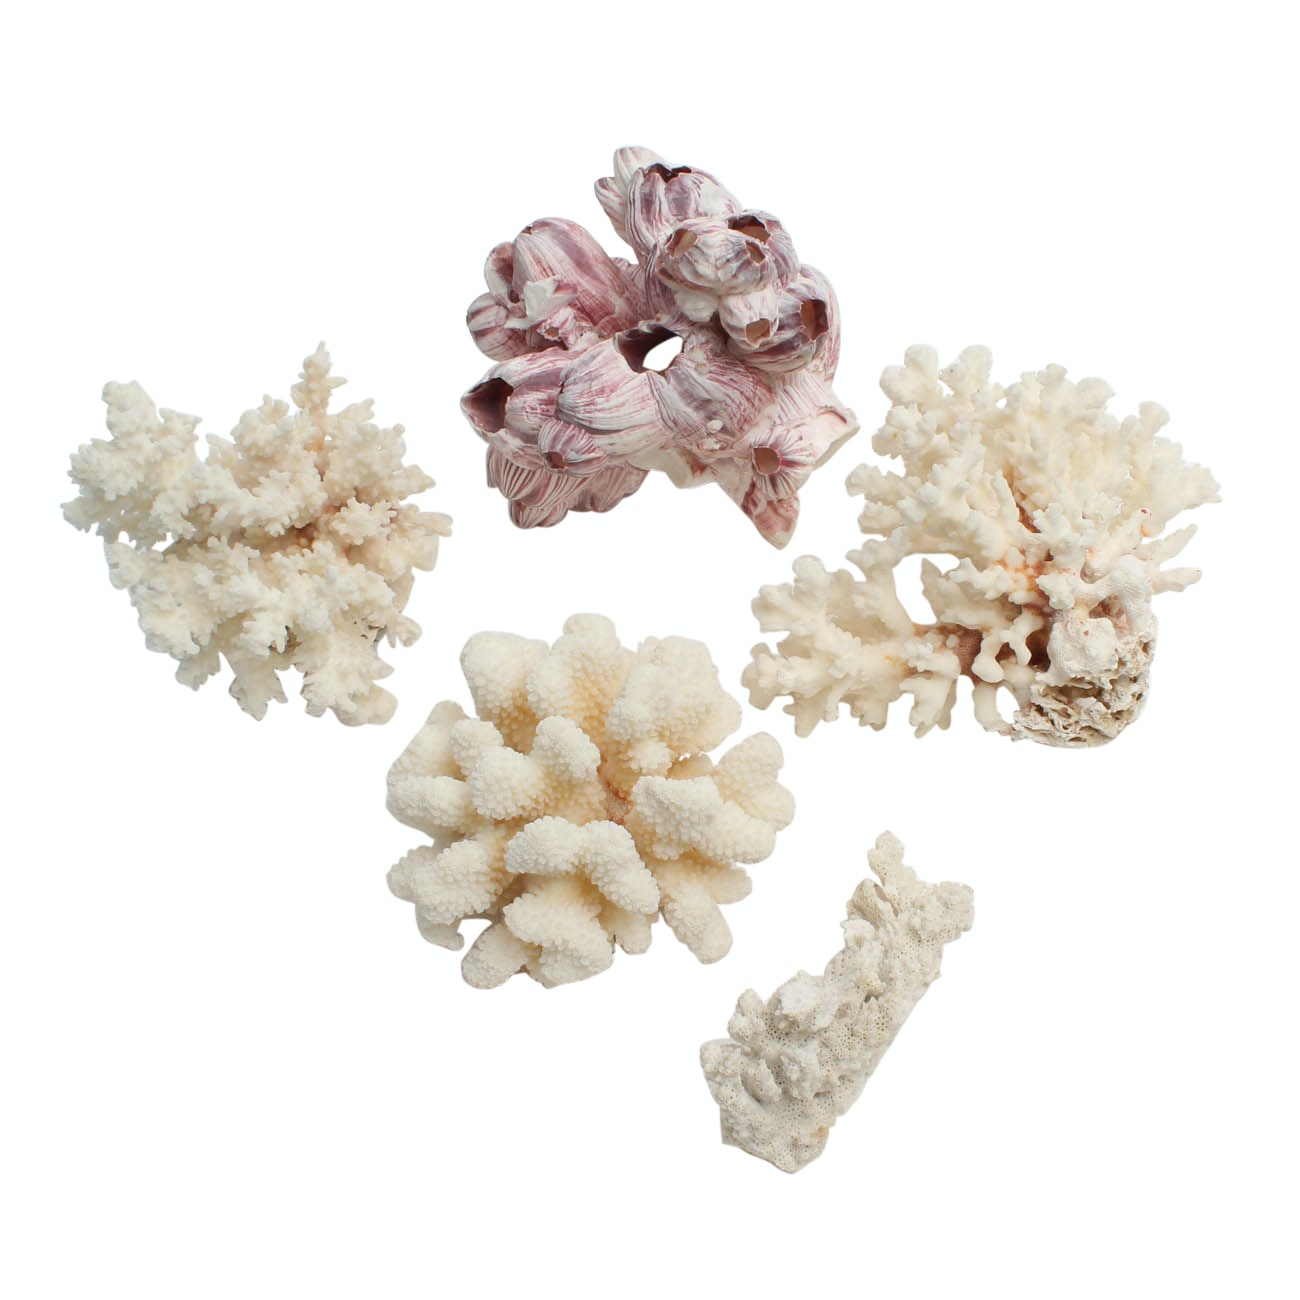 Assorted Coral Specimens and Barnacle Shell Cluster